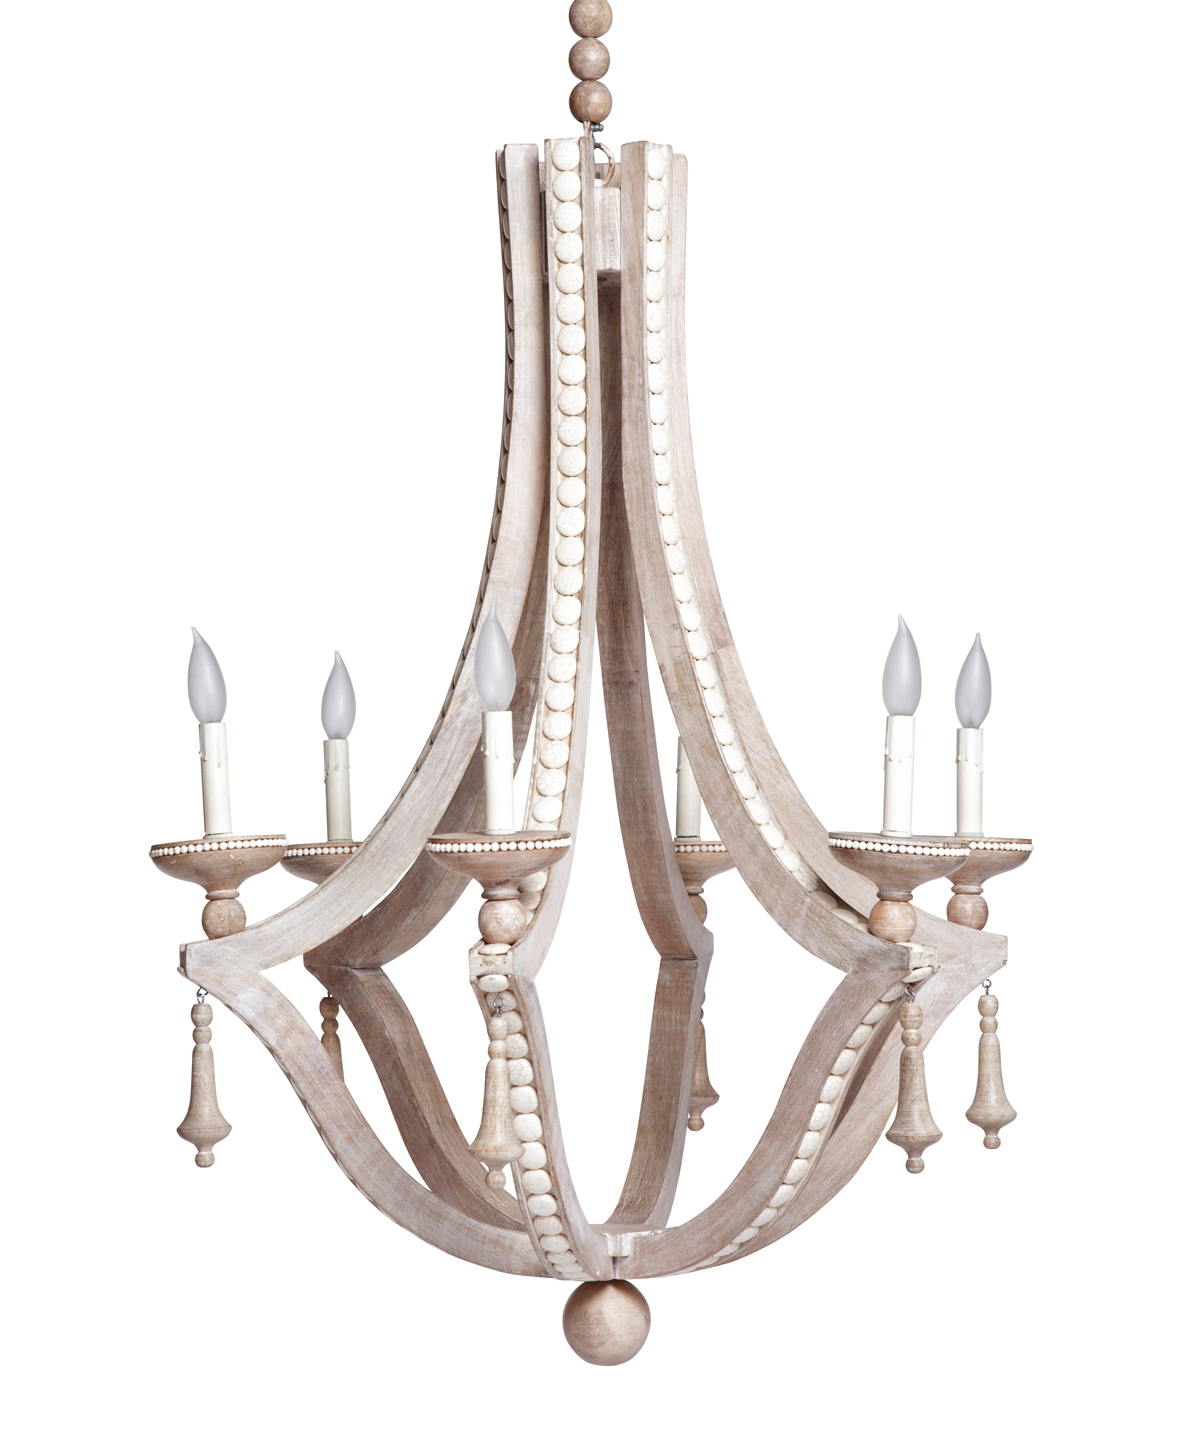 Cabochon Chandelier Cream Emporium Home Emporium Home Within Cream Chandeliers (Image 2 of 15)